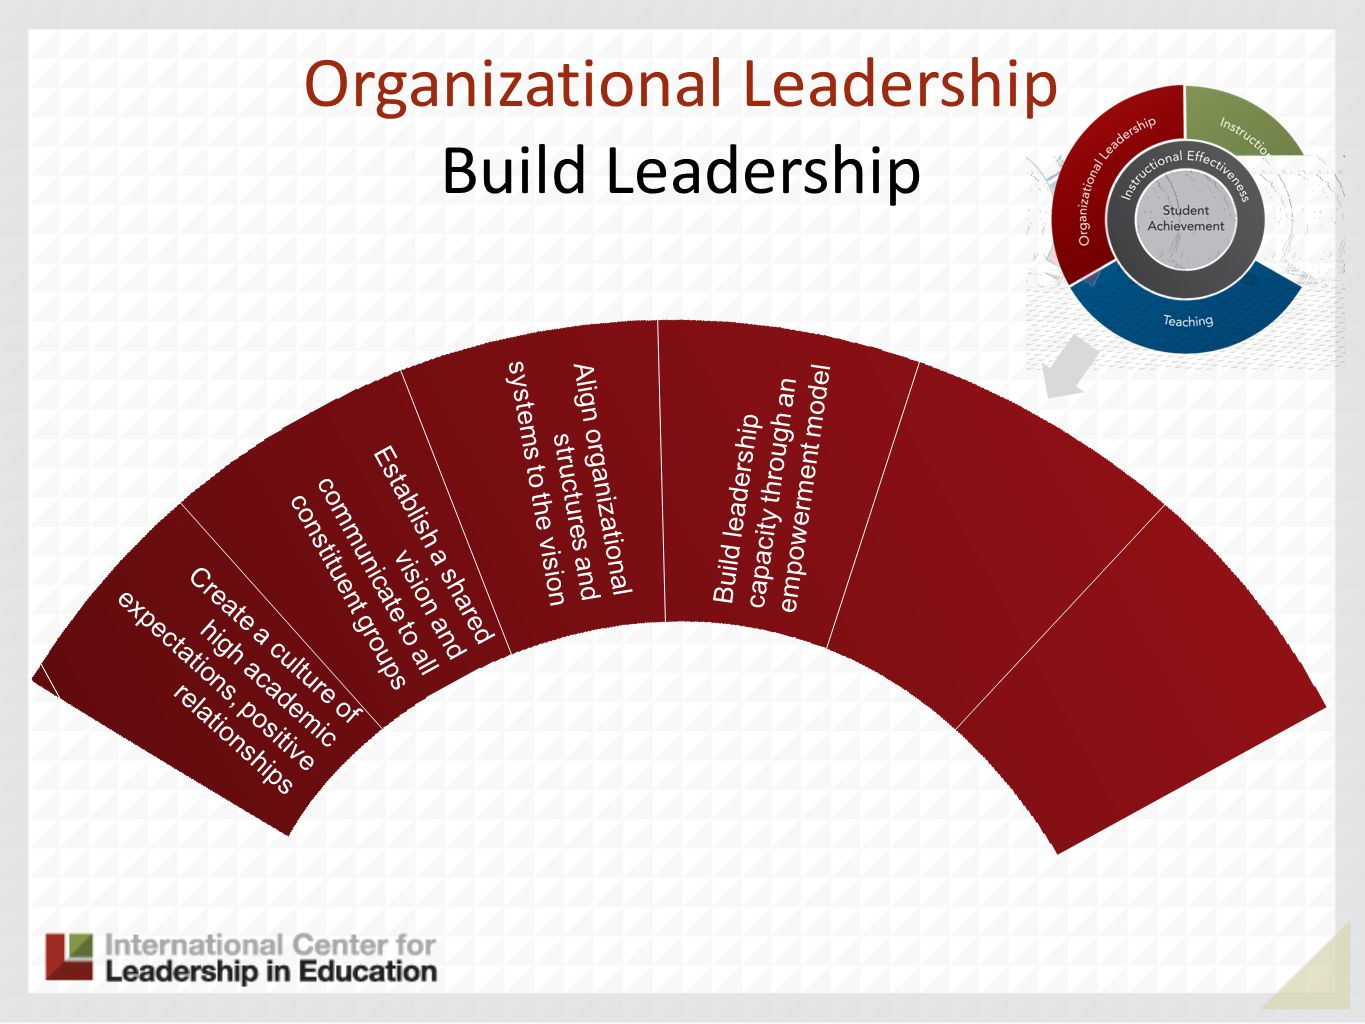 Organizational Leadership Build Leadership Build leadership capacity through an empowerment model Create a culture of high academic expectations, positive relationships Establish a shared vision and communicate to all constituent groups Align organizational structures and systems to the vision